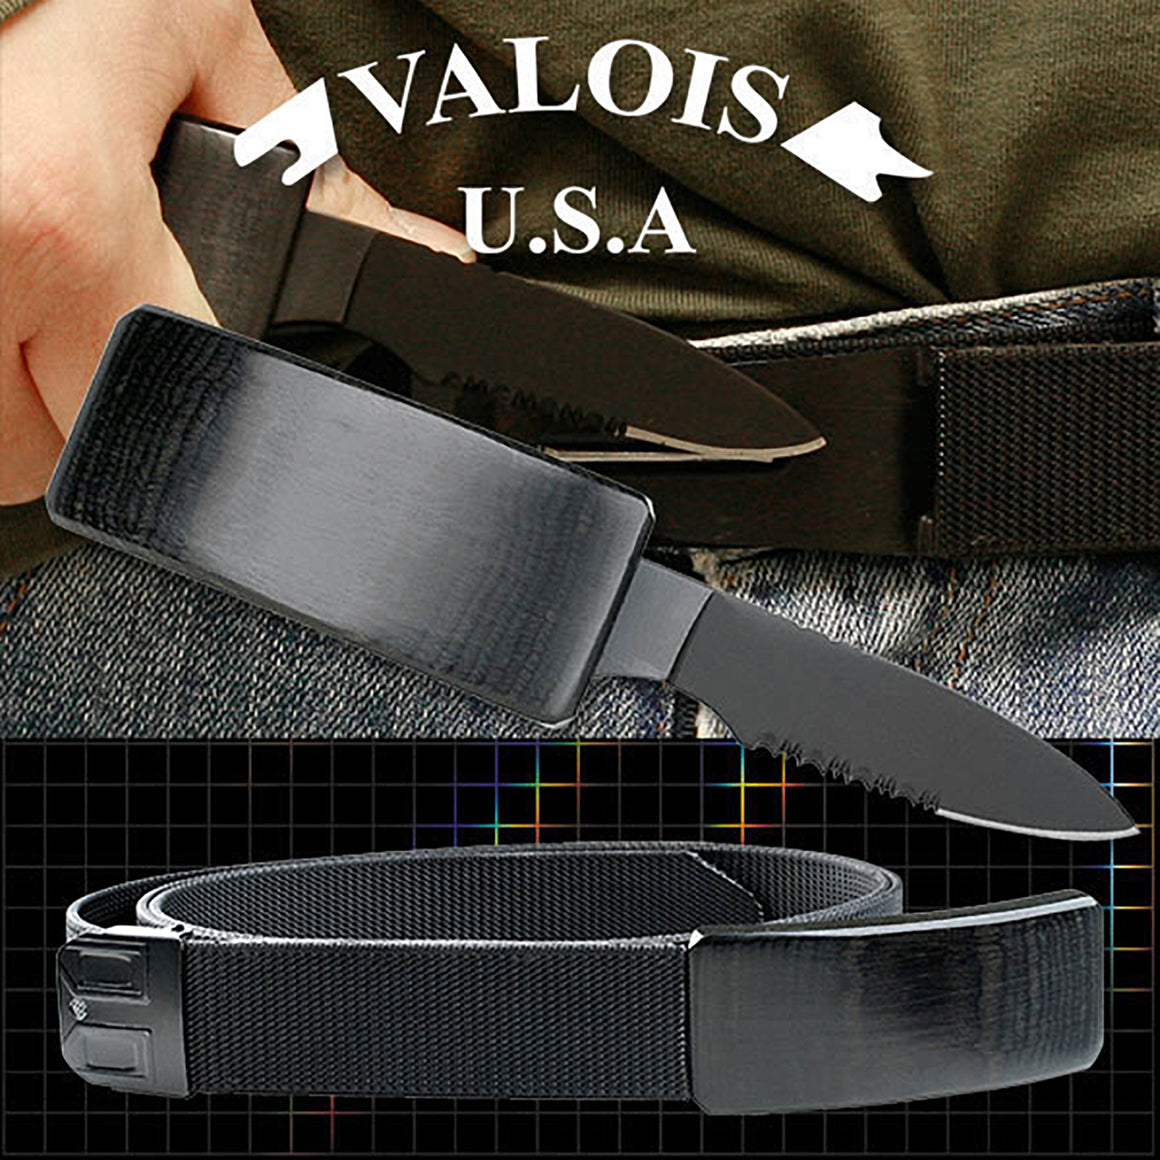 DV-01 Belt Buckle Knife